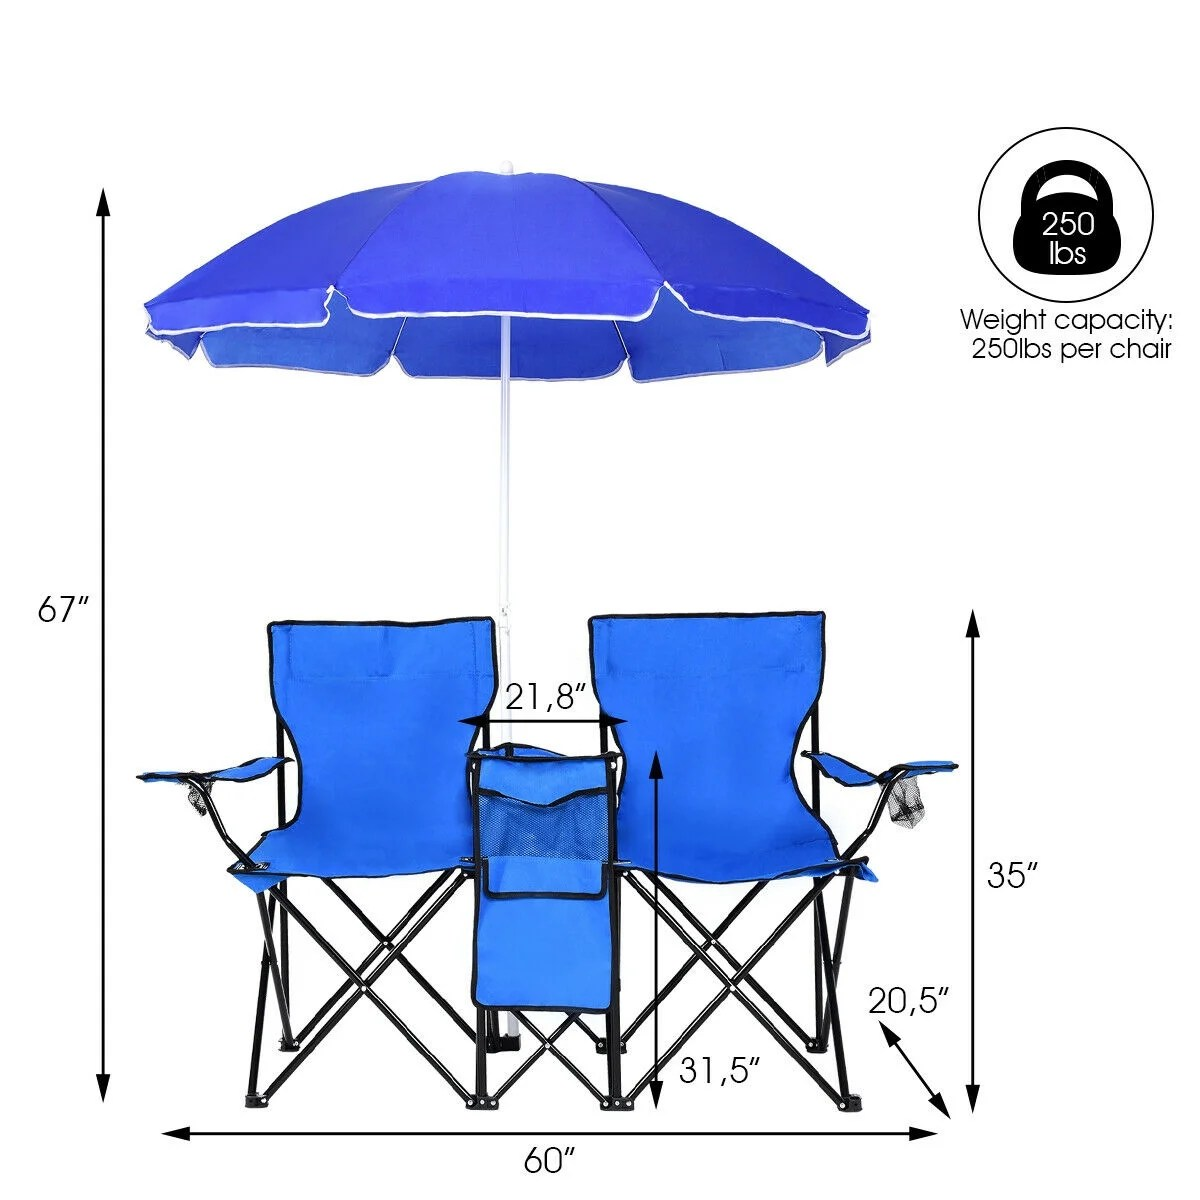 Chair With Umbrella Costway Portable Folding Picnic Double Chair W Umbrella Table Cooler Beach Camping Chair